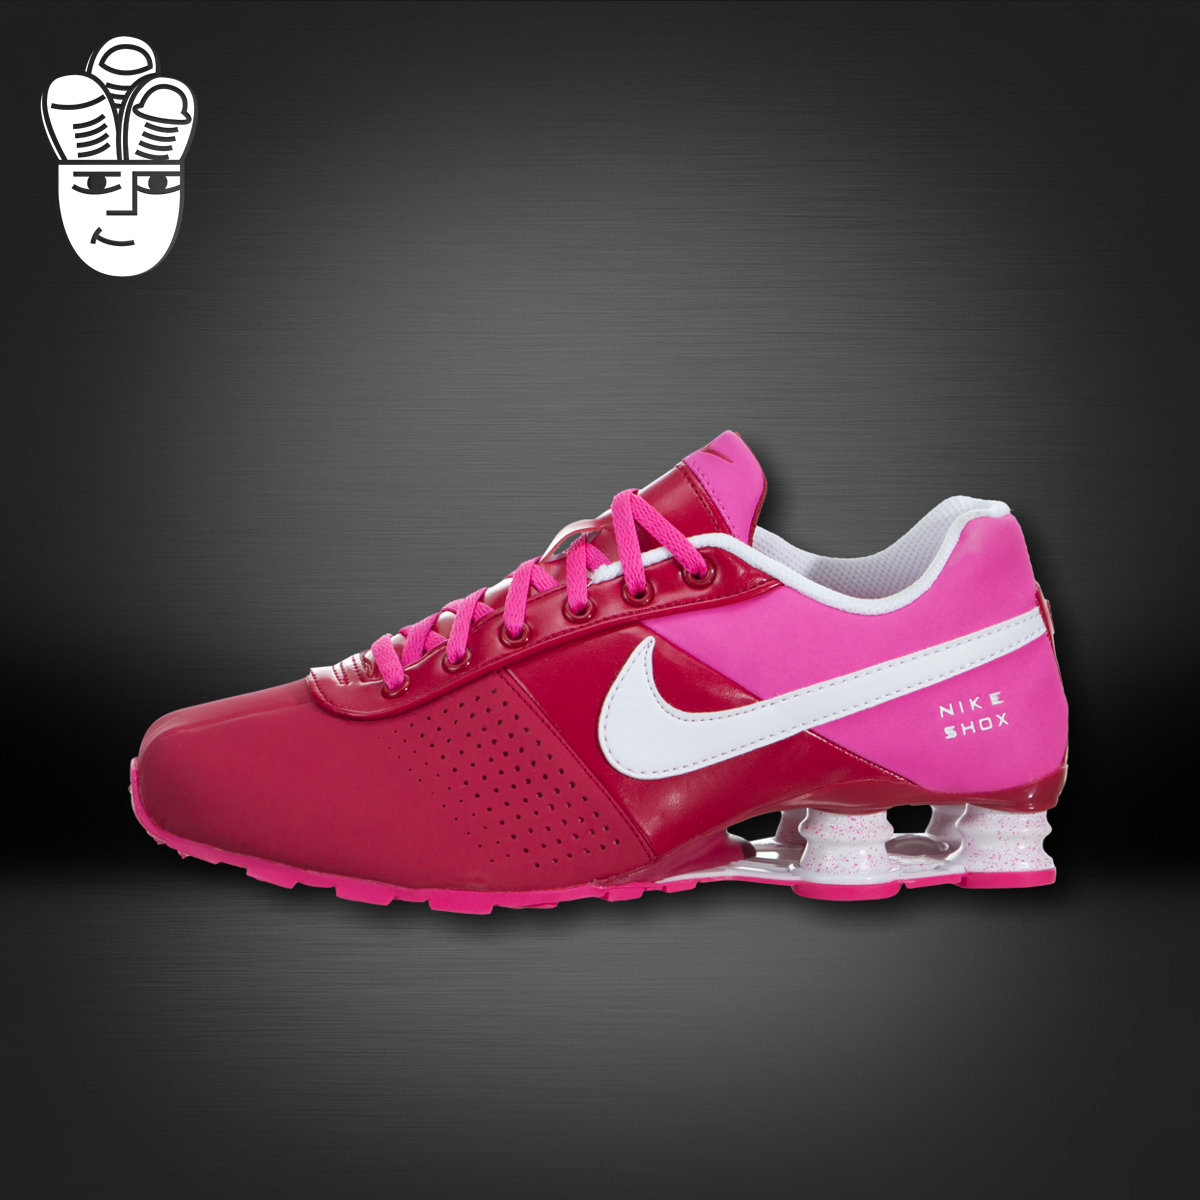 best service 97e88 e5823 Get Quotations · Nike nike shox pnt deliver high column gs men and women  running shoes casual shoes